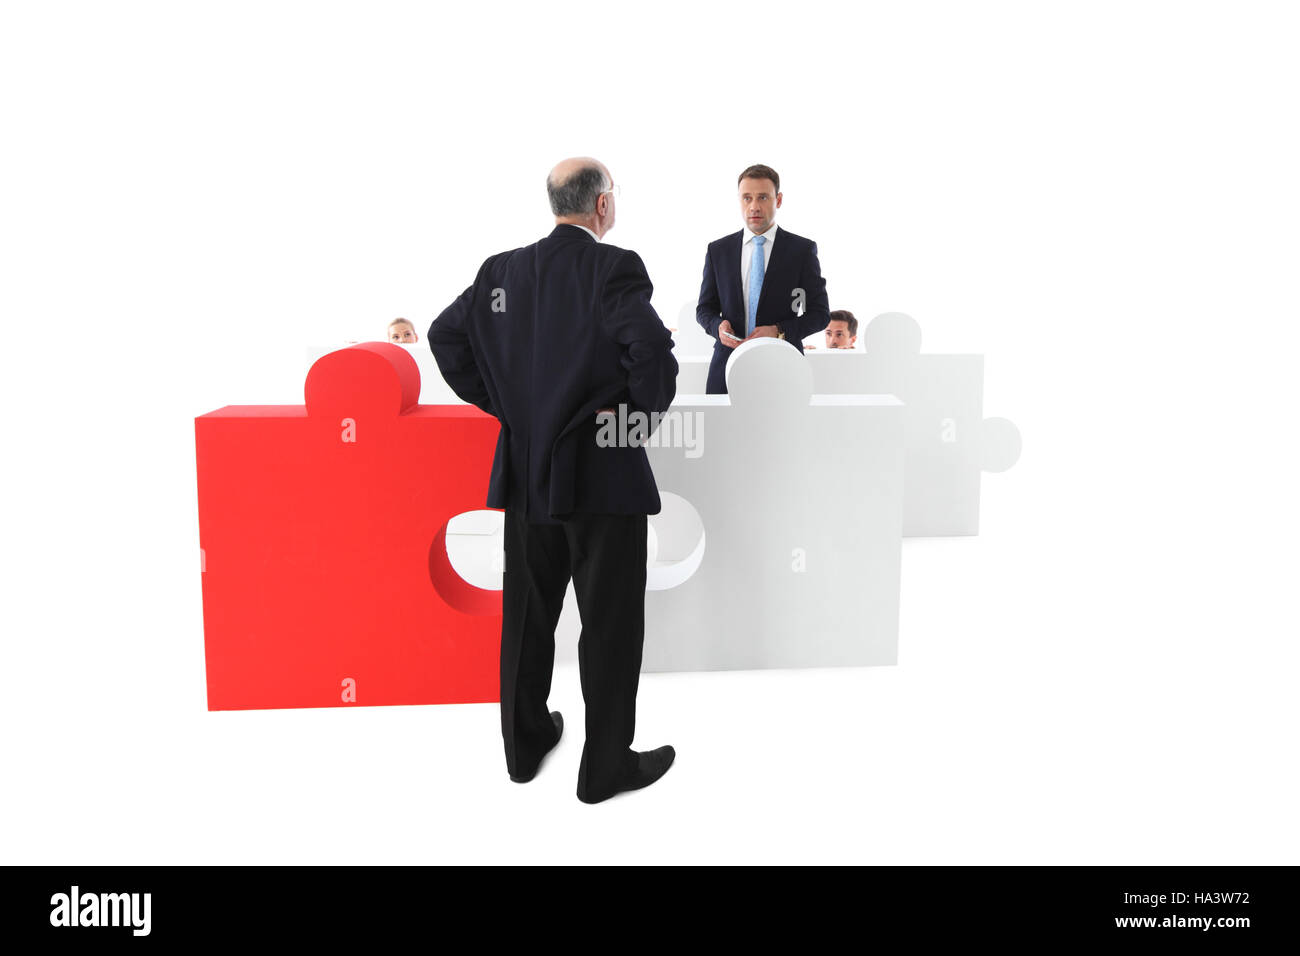 Confused shocked, surprised worker apologizes to manager, part of puzzle team concept, isolated on white - Stock Image